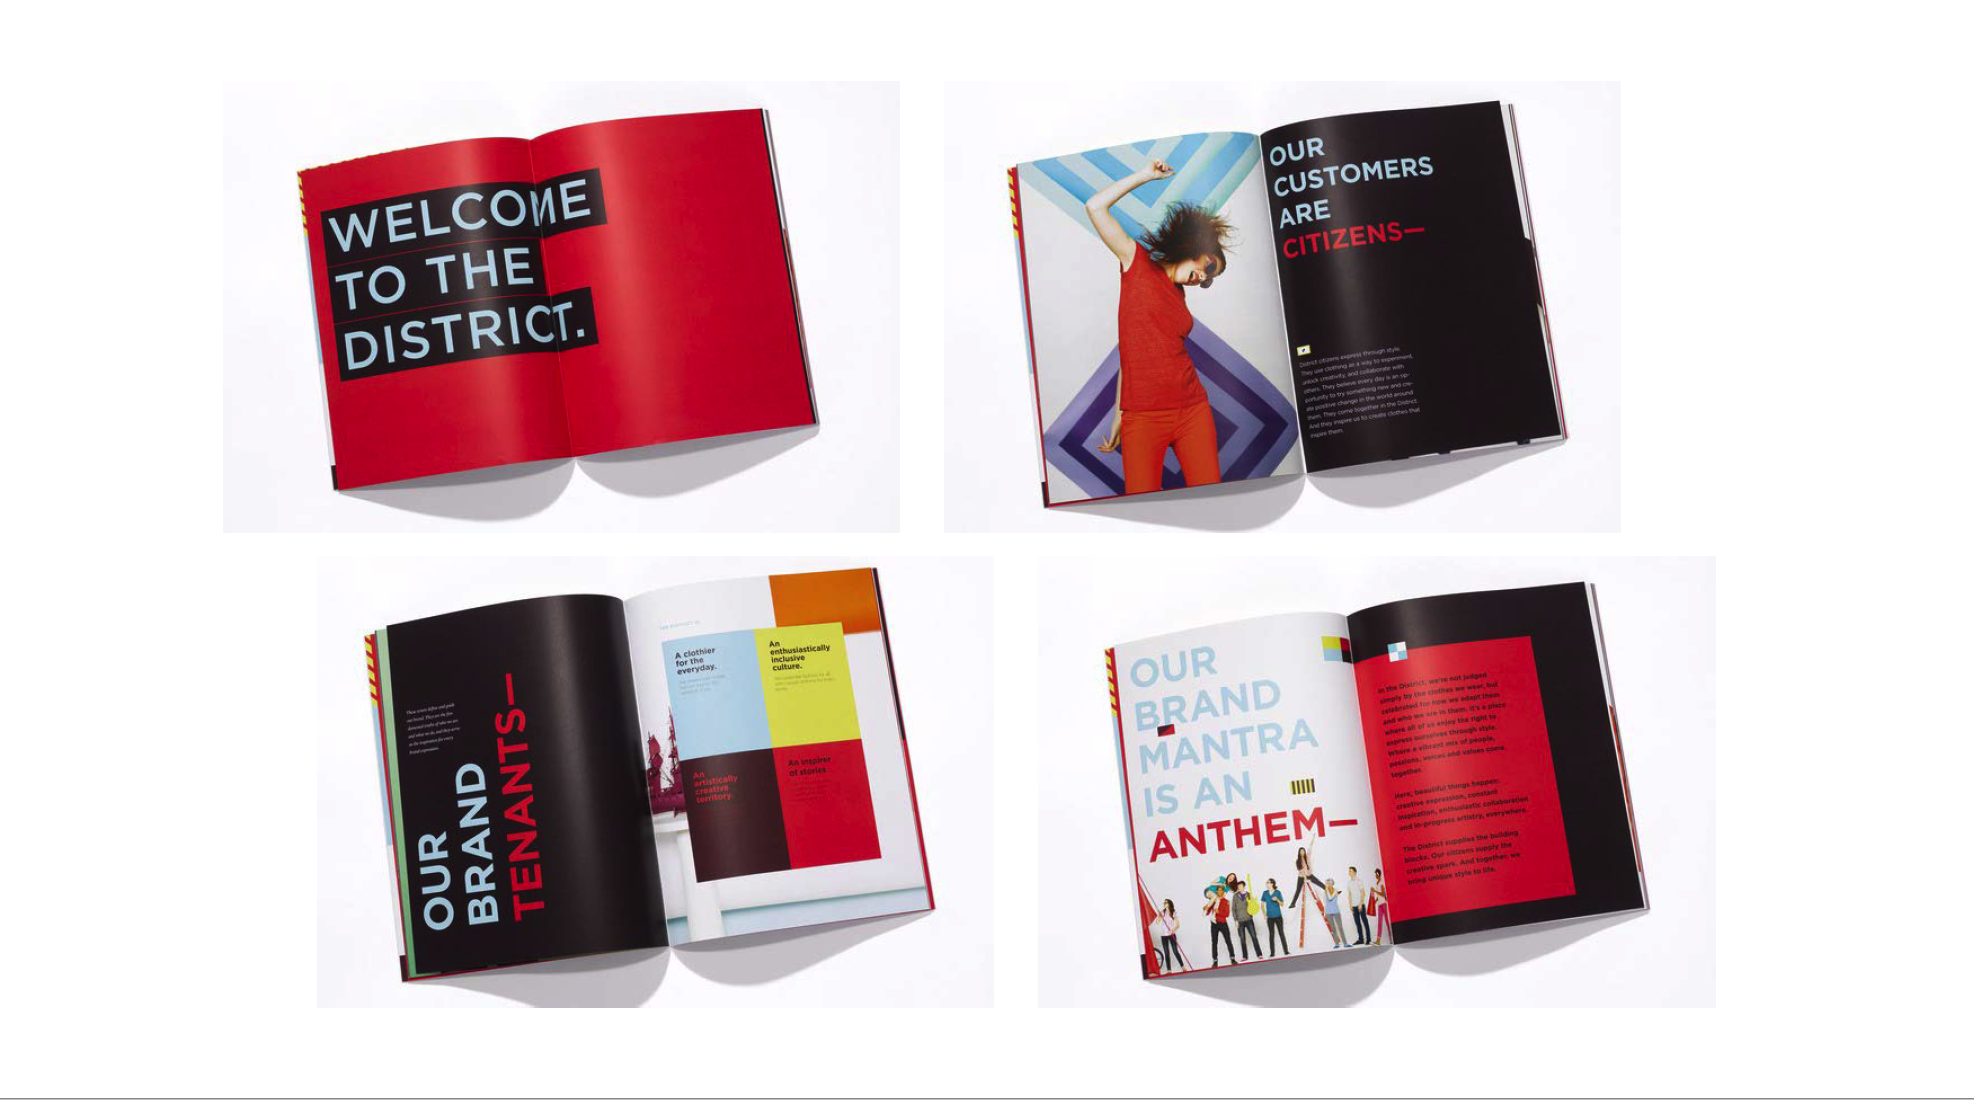 District - Brand book 4 spreads .png